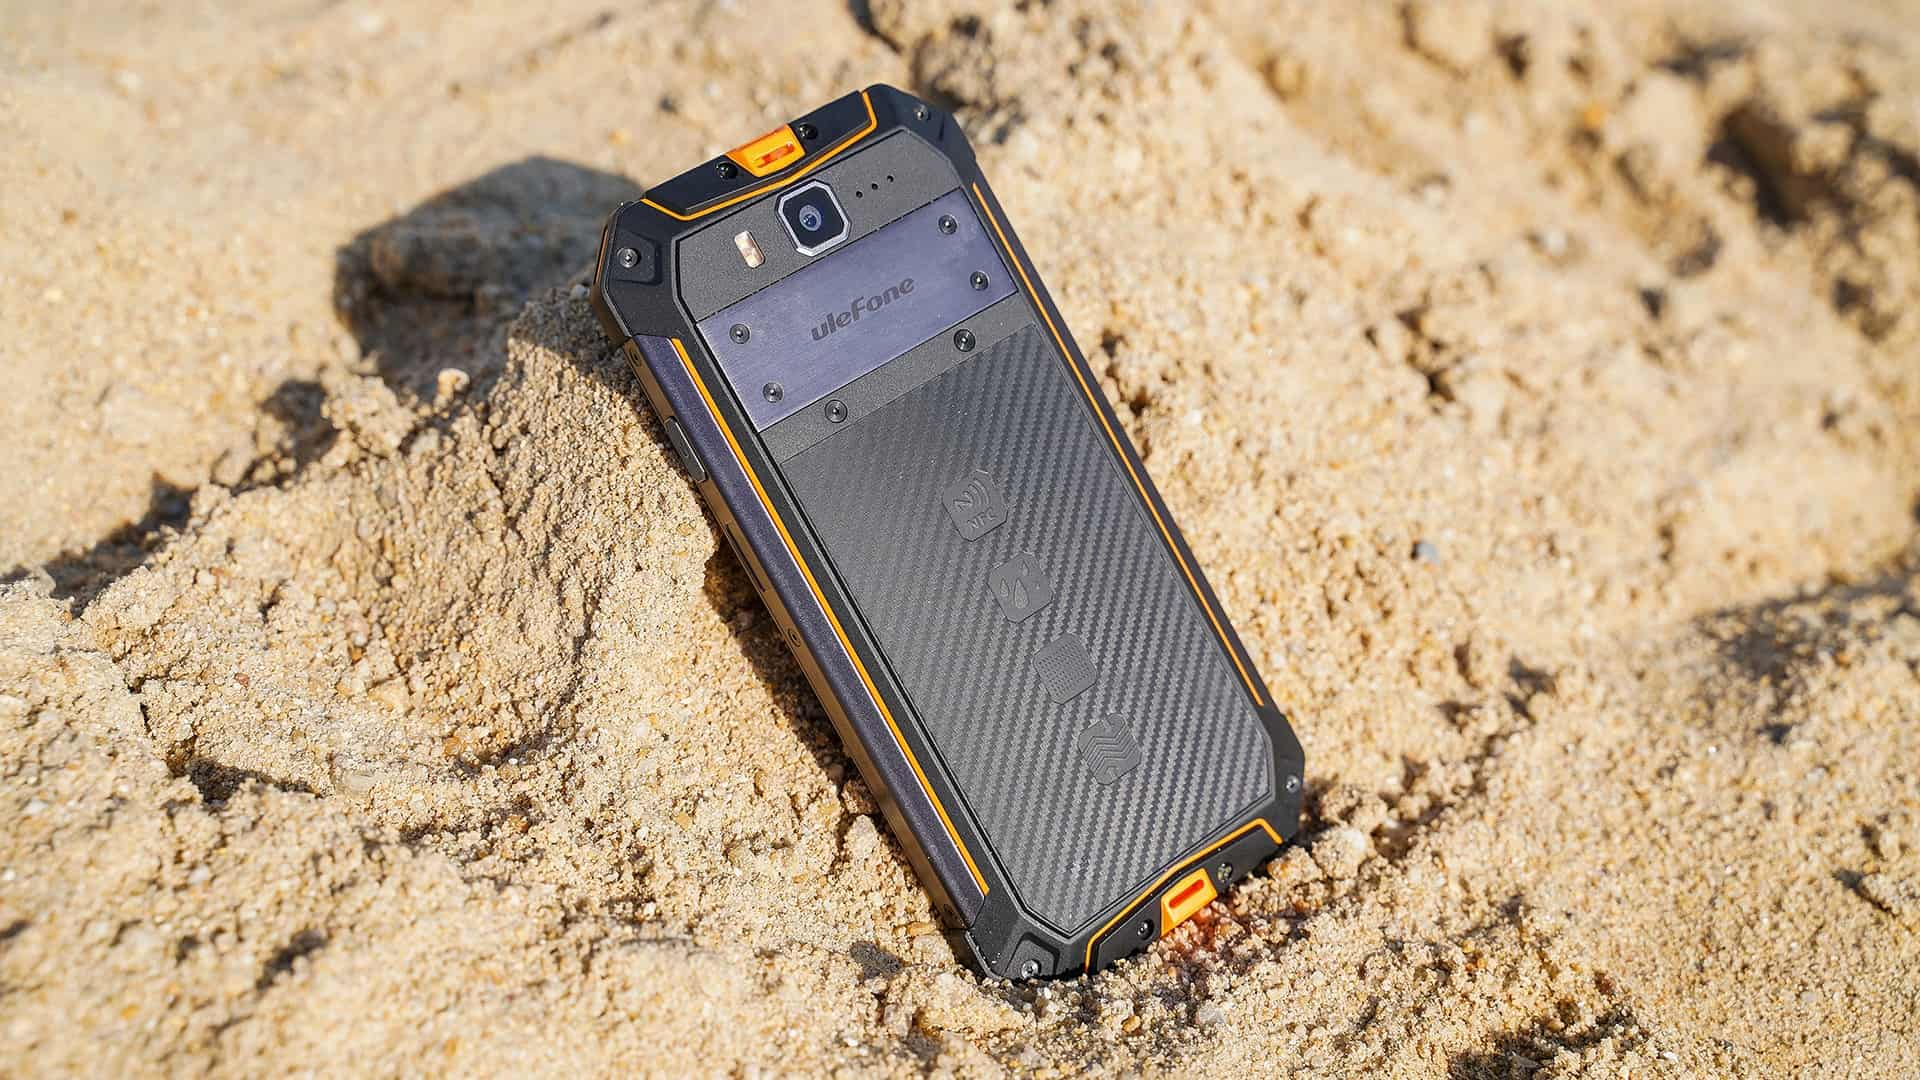 Ulefone Armor 3W and 3WT images 2